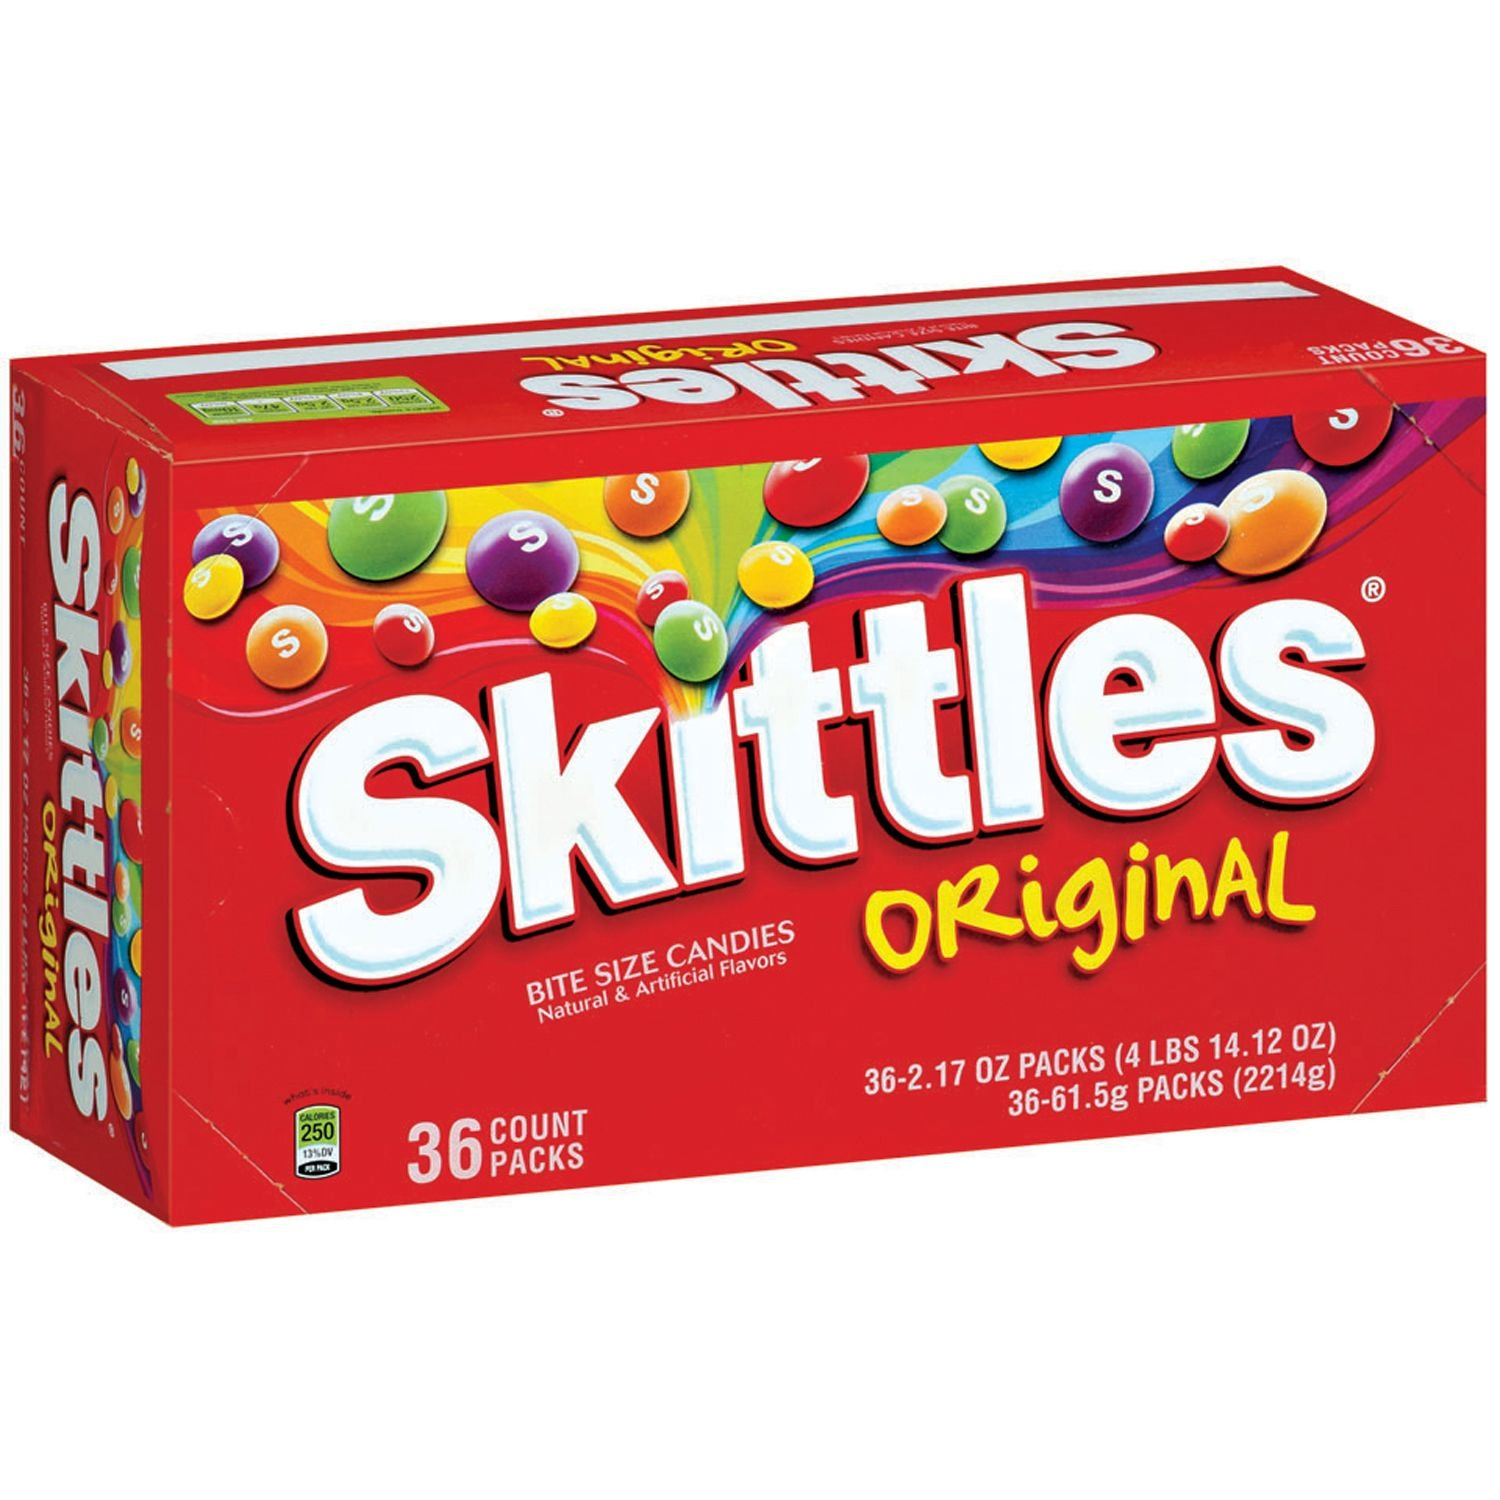 Skittles Original Candy, 2.17 Oz, Pack of 36